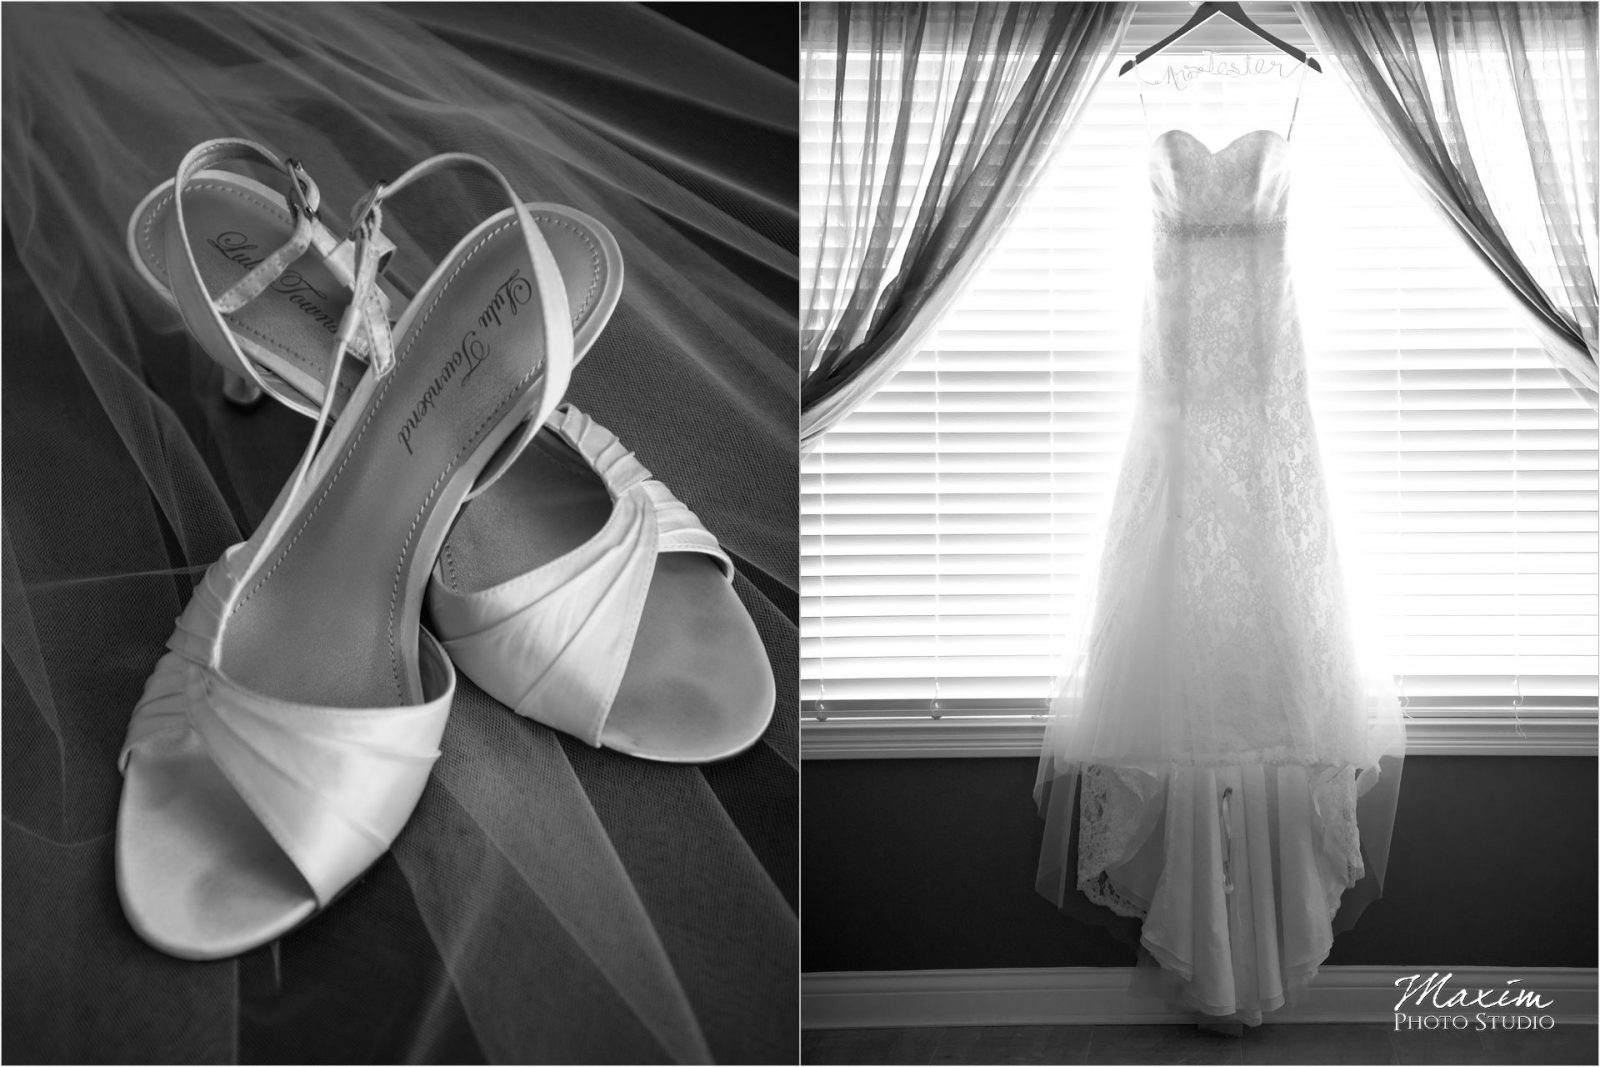 Cooper Creed Wedding Dress bride preparations shoes